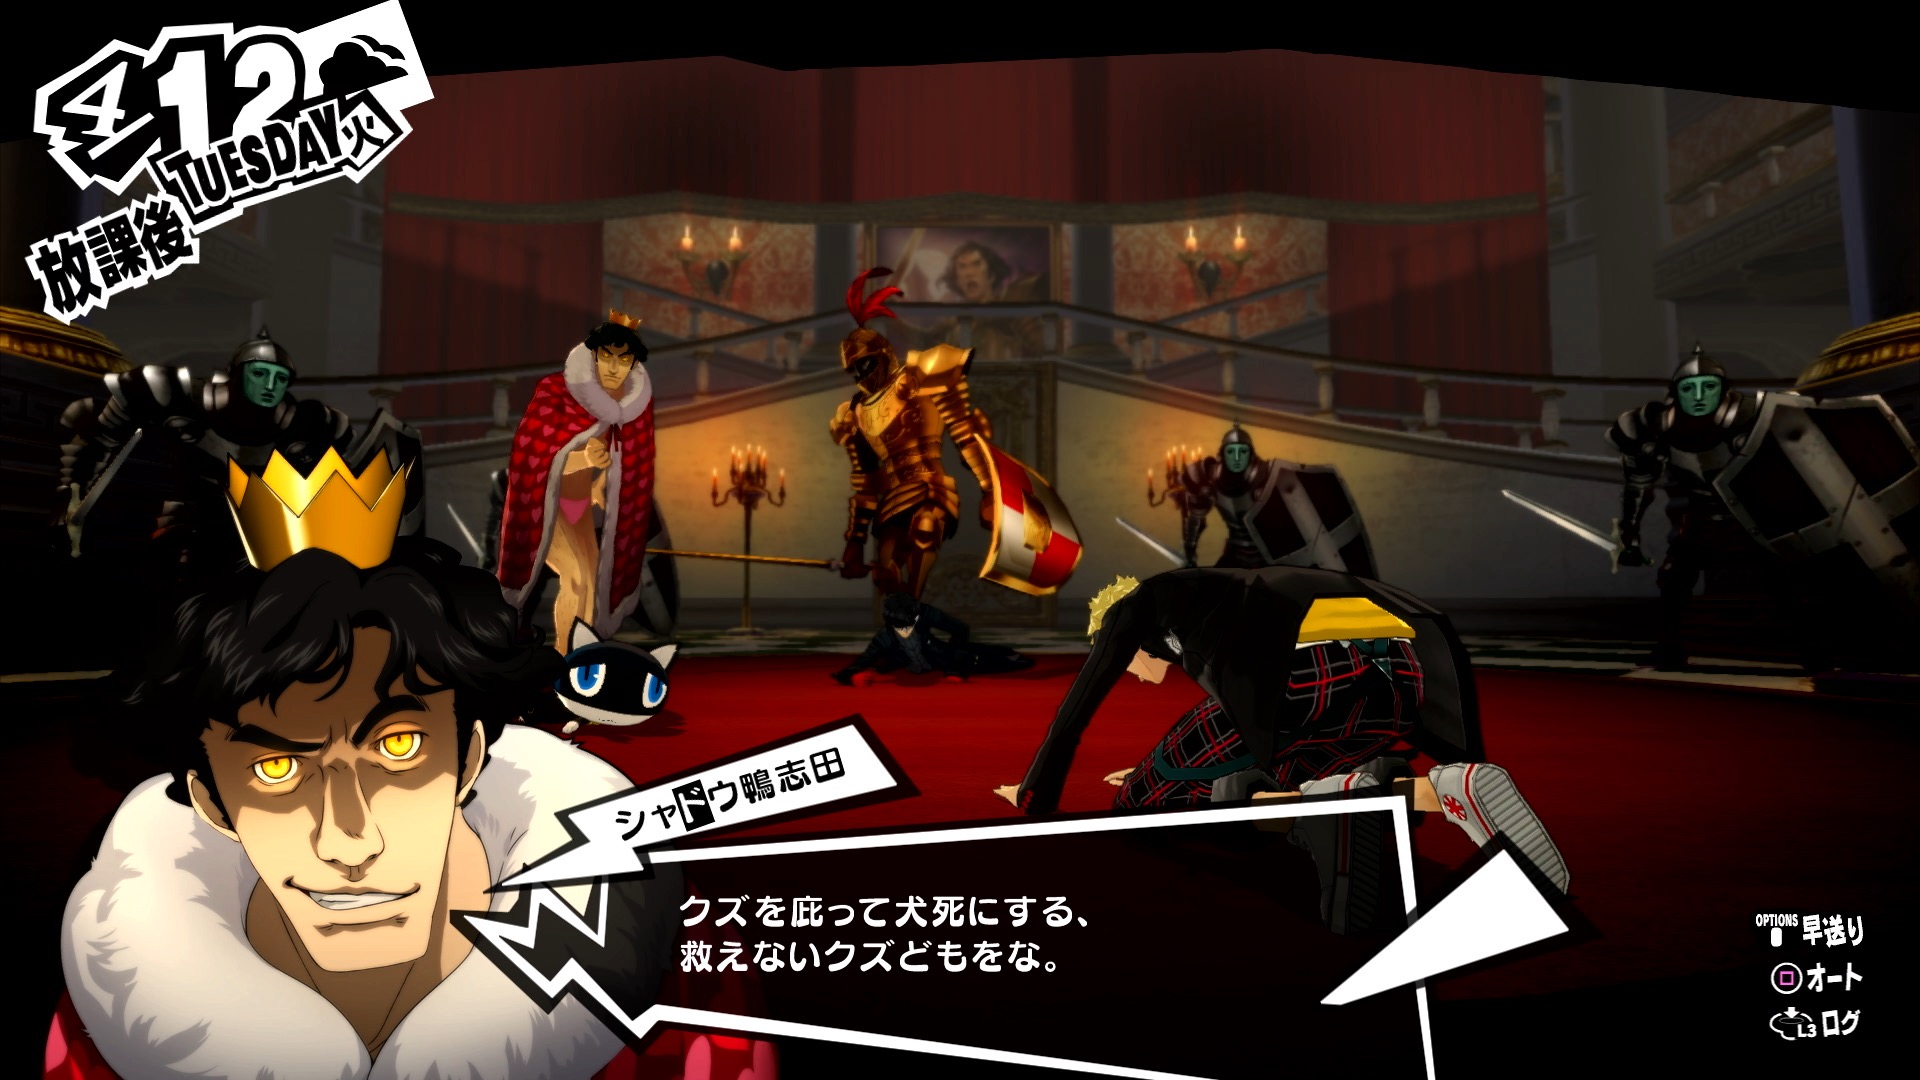 Persona 5 Royal: new character Arcana and abilities and